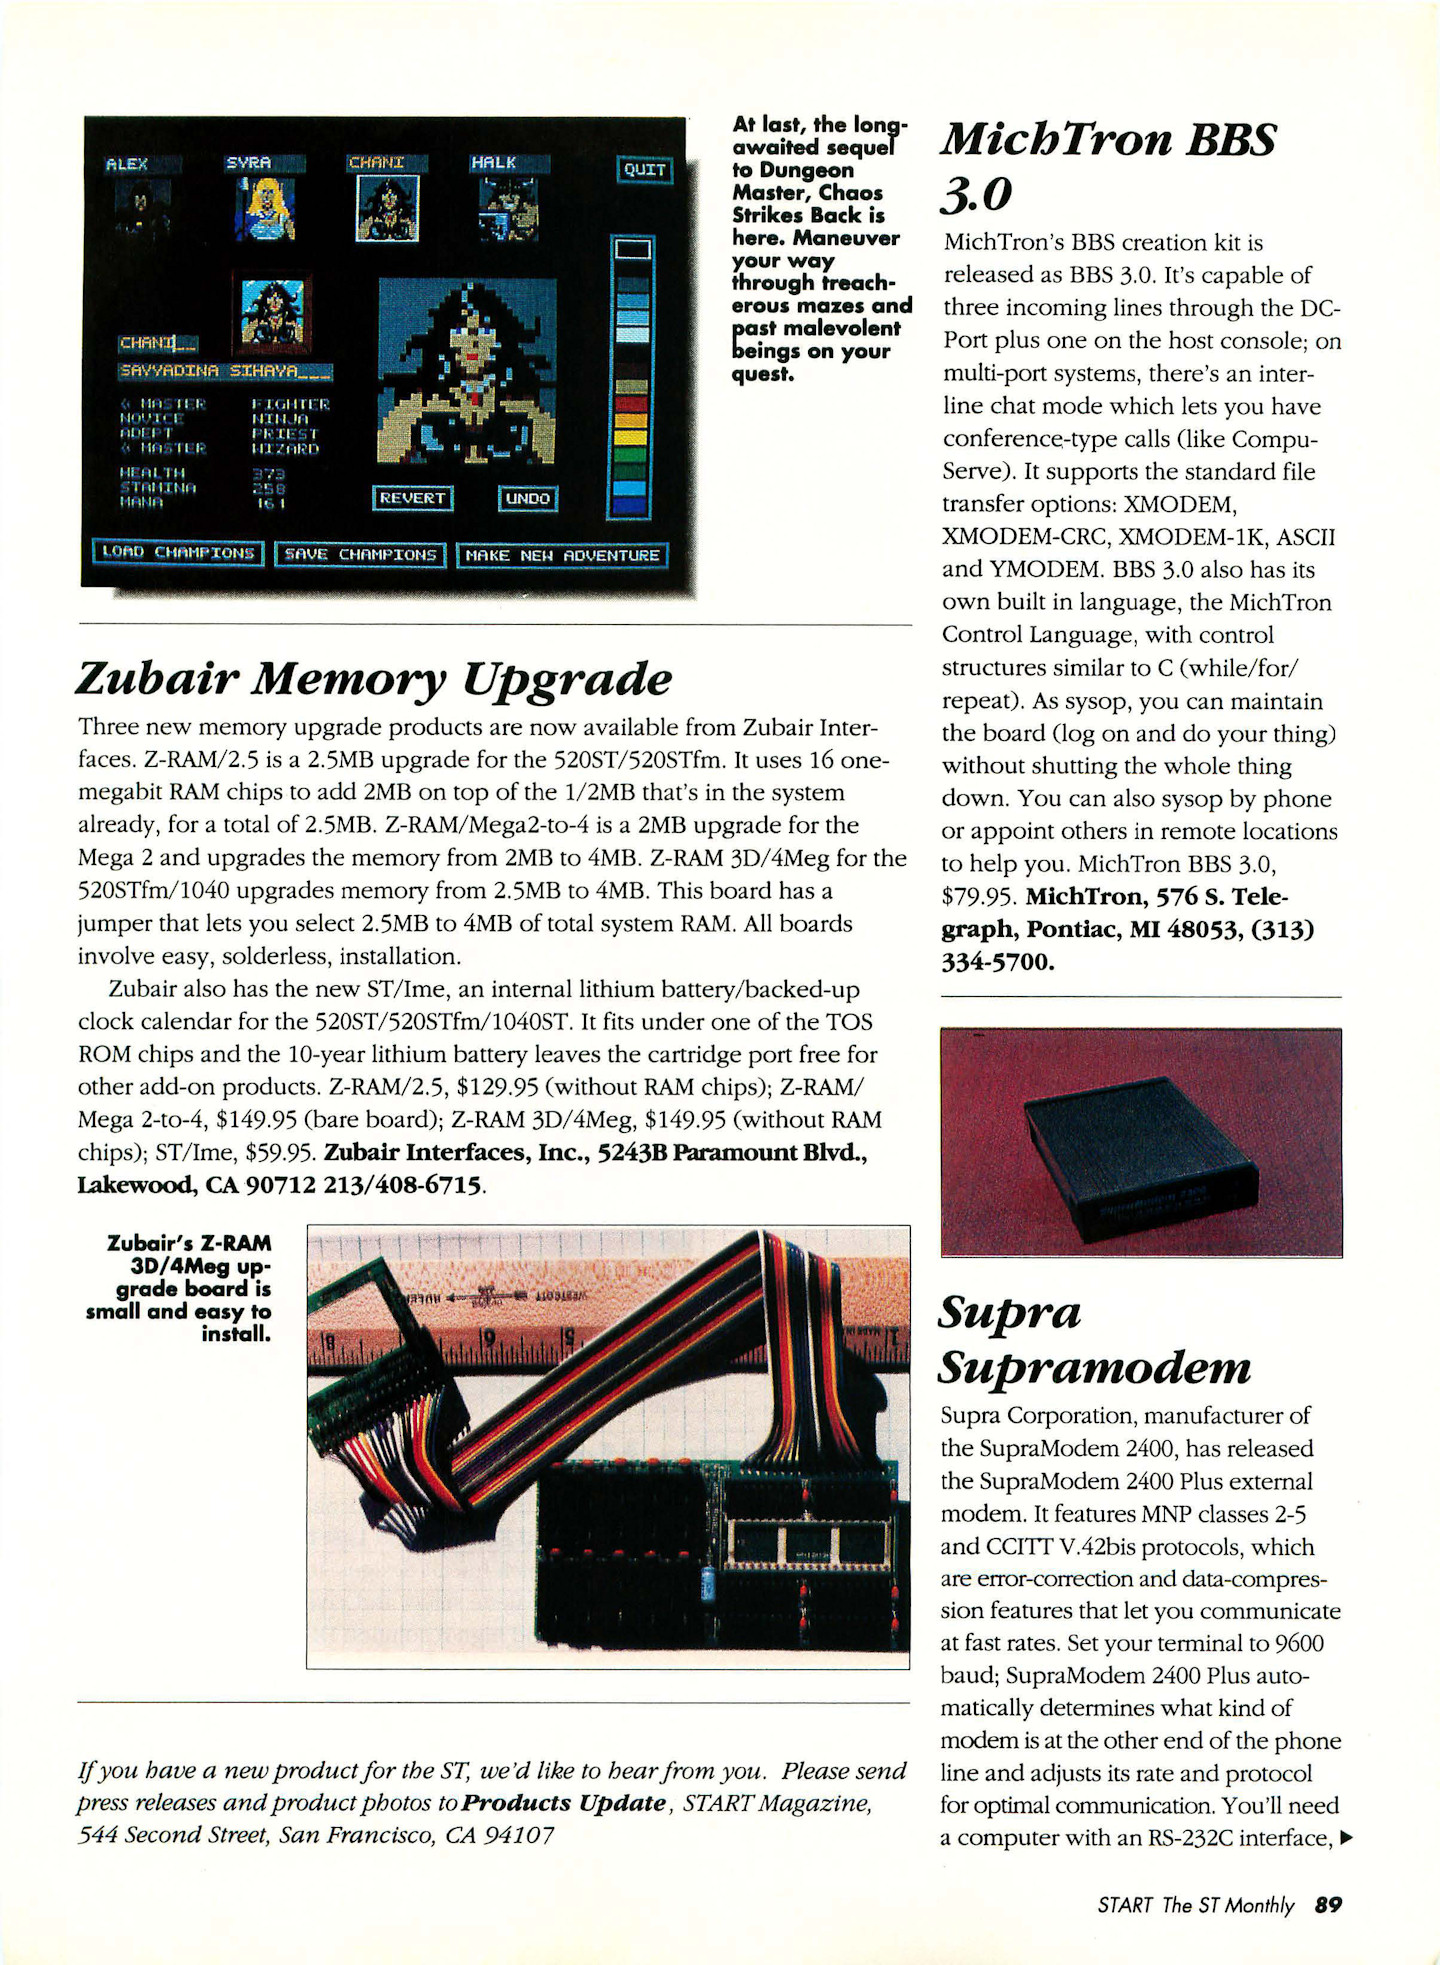 Chaos Strikes Back for Atari ST Preview published in American magazine 'Start', Vol 4 No 10 May 1990, Page 89